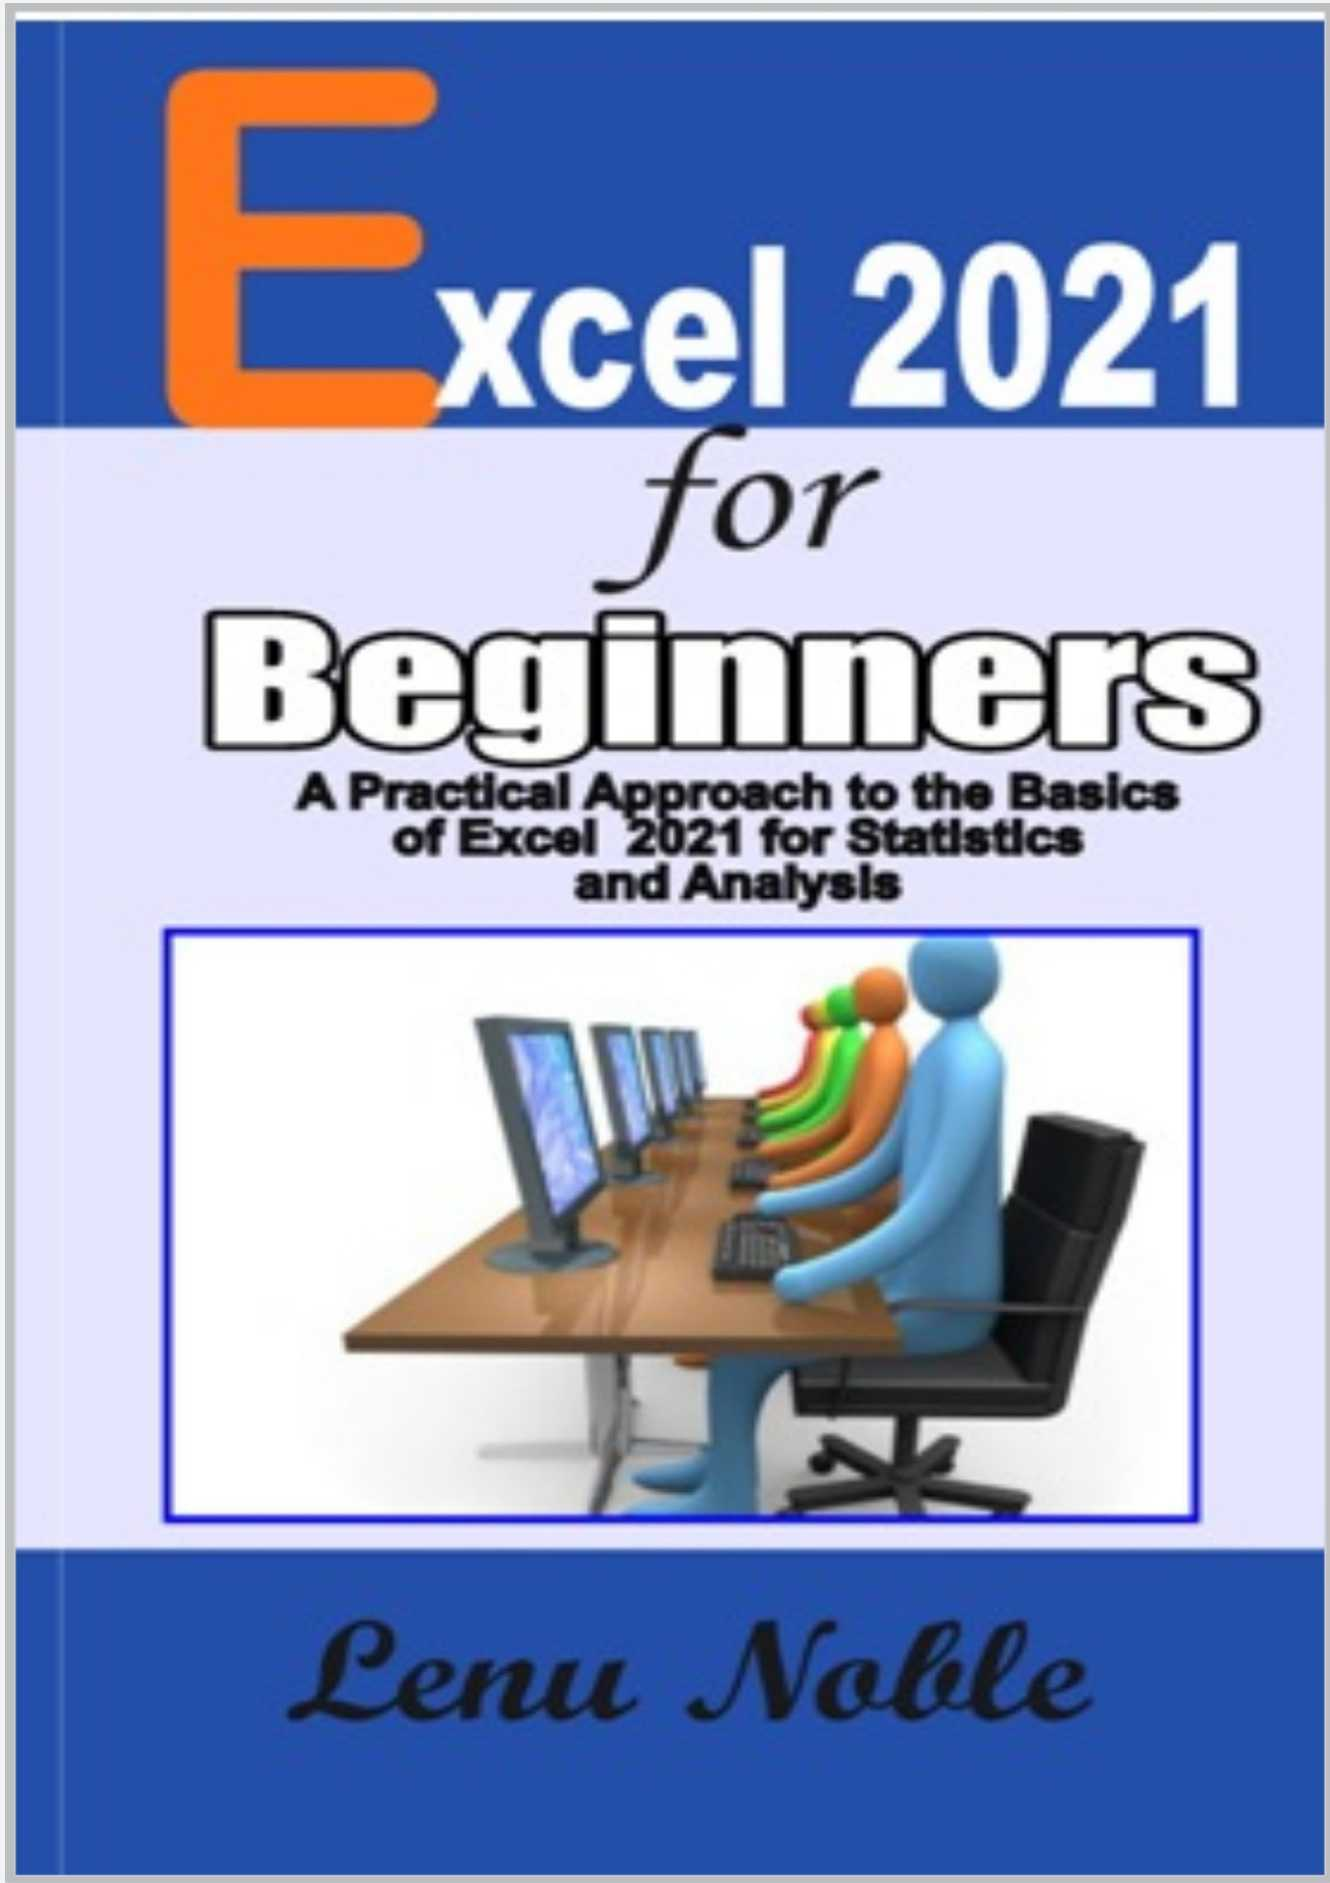 Excel 2021 For Beginners: A Practical Approach To The Basics Of Excel 2021 For Statistics And Analysis